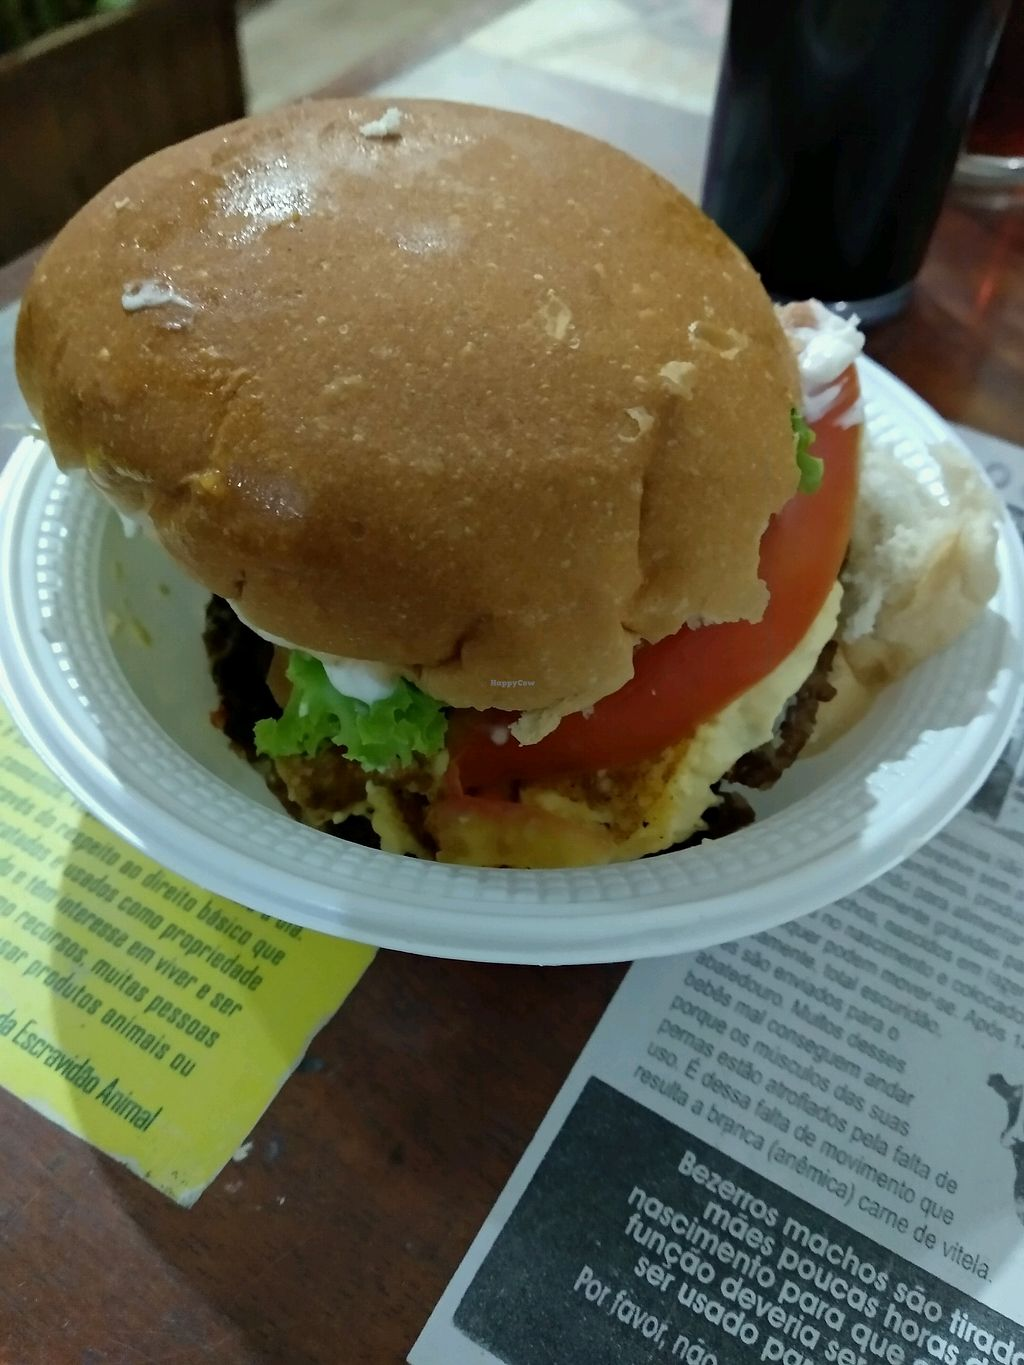 "Photo of Lar Vegetariano Vegan  by <a href=""/members/profile/maltman23"">maltman23</a> <br/>One of several yummy Brazilian fast-food items served on the all-you-can-eat menu at Lar Vegetariano Vegan <br/> February 3, 2018  - <a href='/contact/abuse/image/44899/354411'>Report</a>"